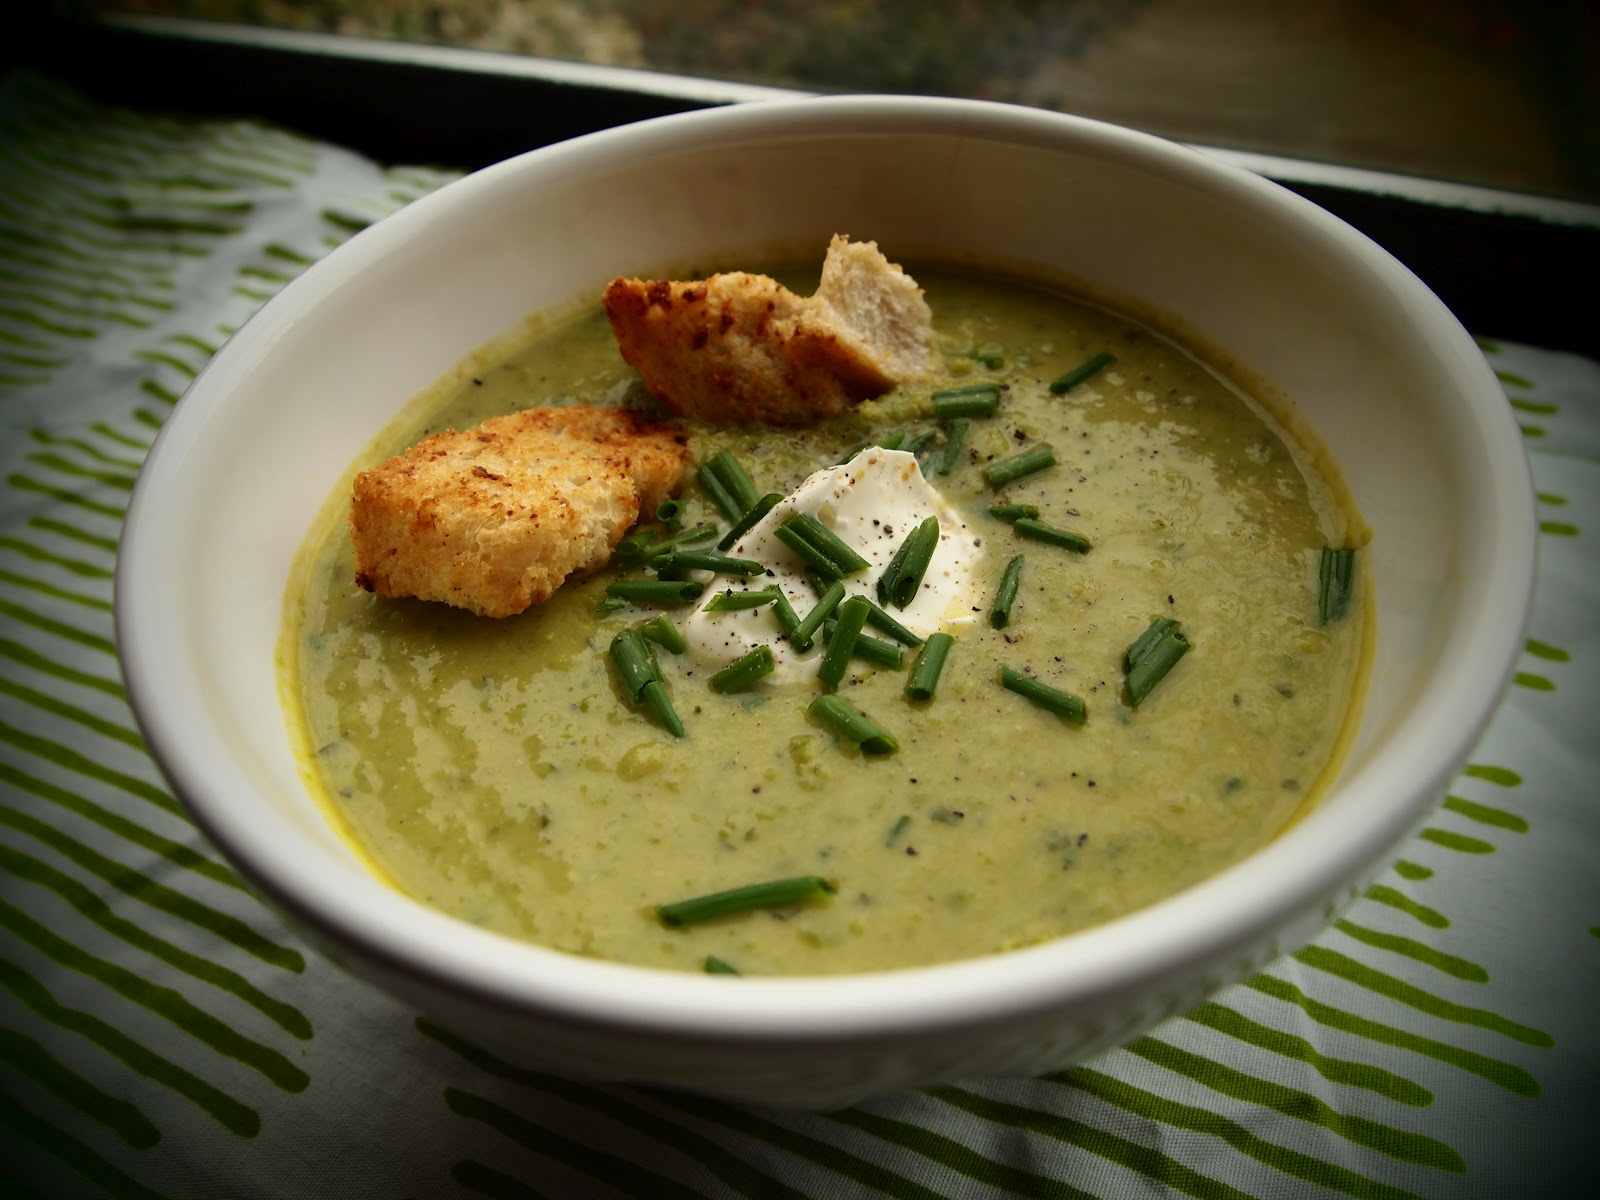 ... Young Dubliners and slip into something green, then make this soup